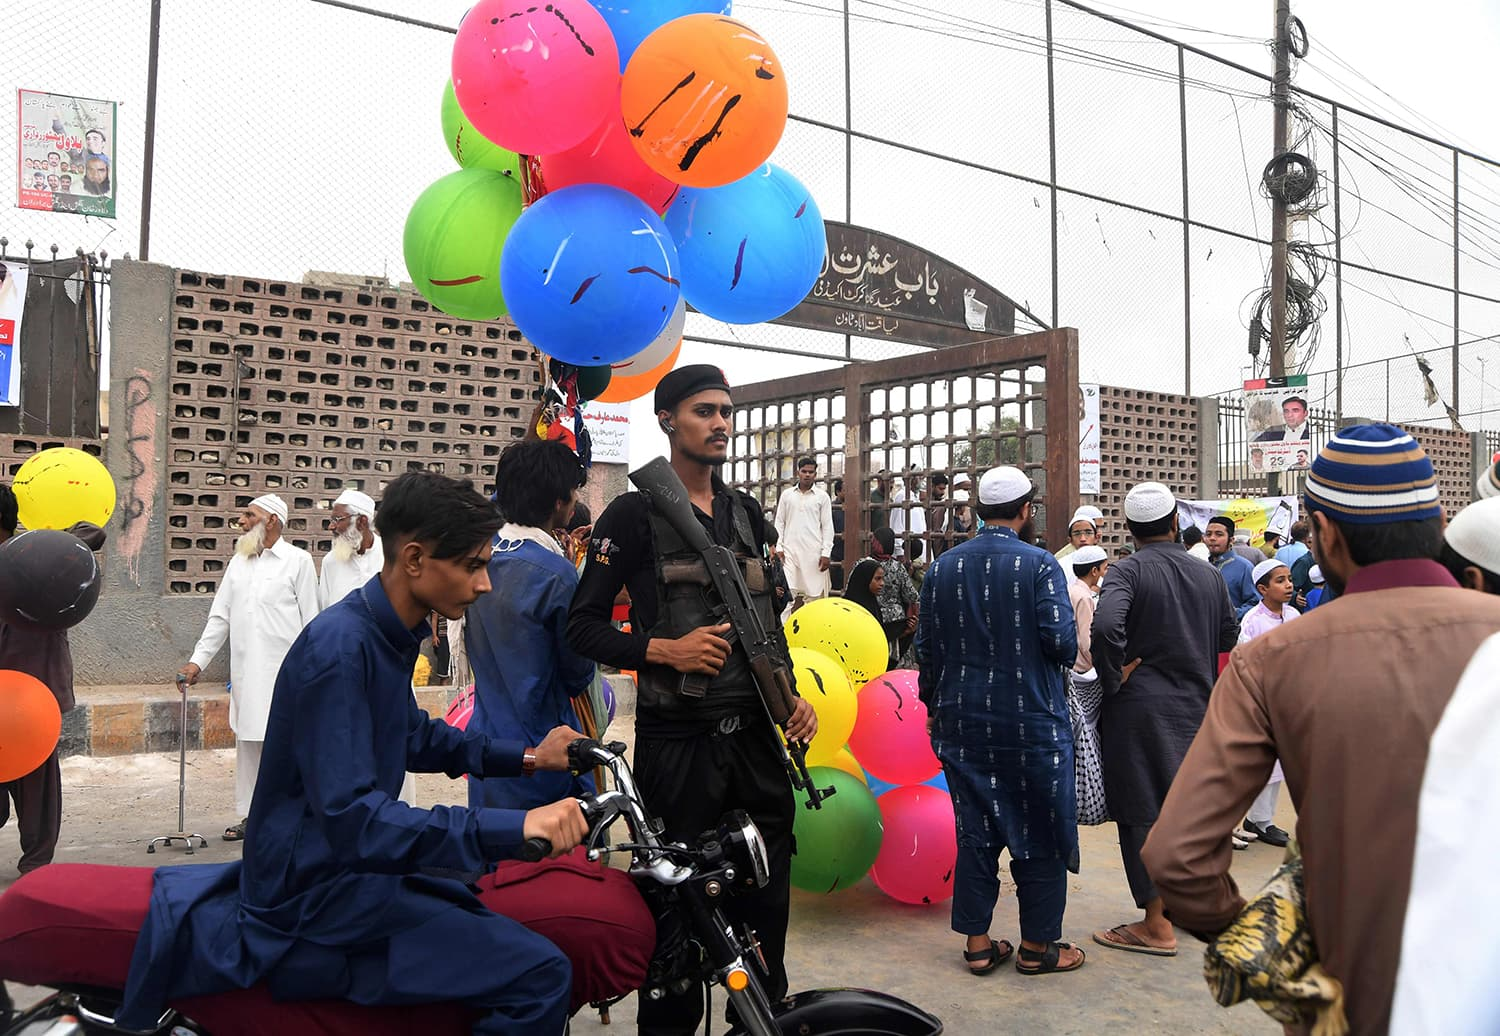 A policeman stands guard as worshippers leave after offering Eidul Fitr prayers in Karachi. — AFP